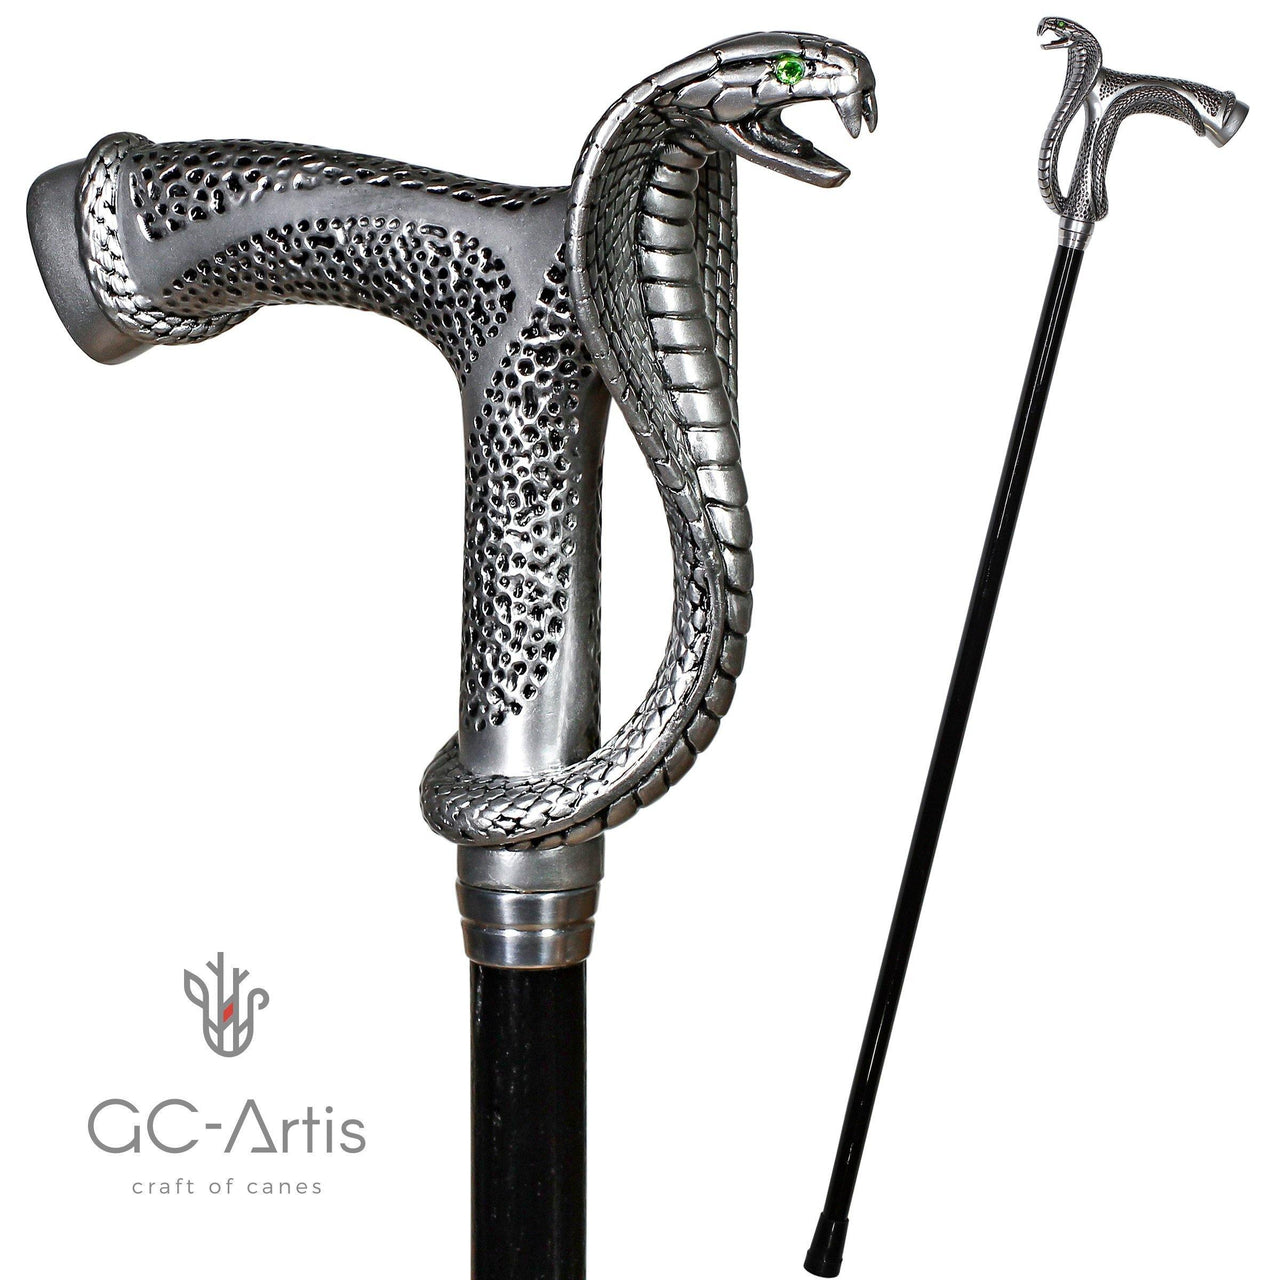 Snake Cobra Walking Stick cane silver color -unique designer handle green crystalls walking stick handmade black wooden shaft cane for man